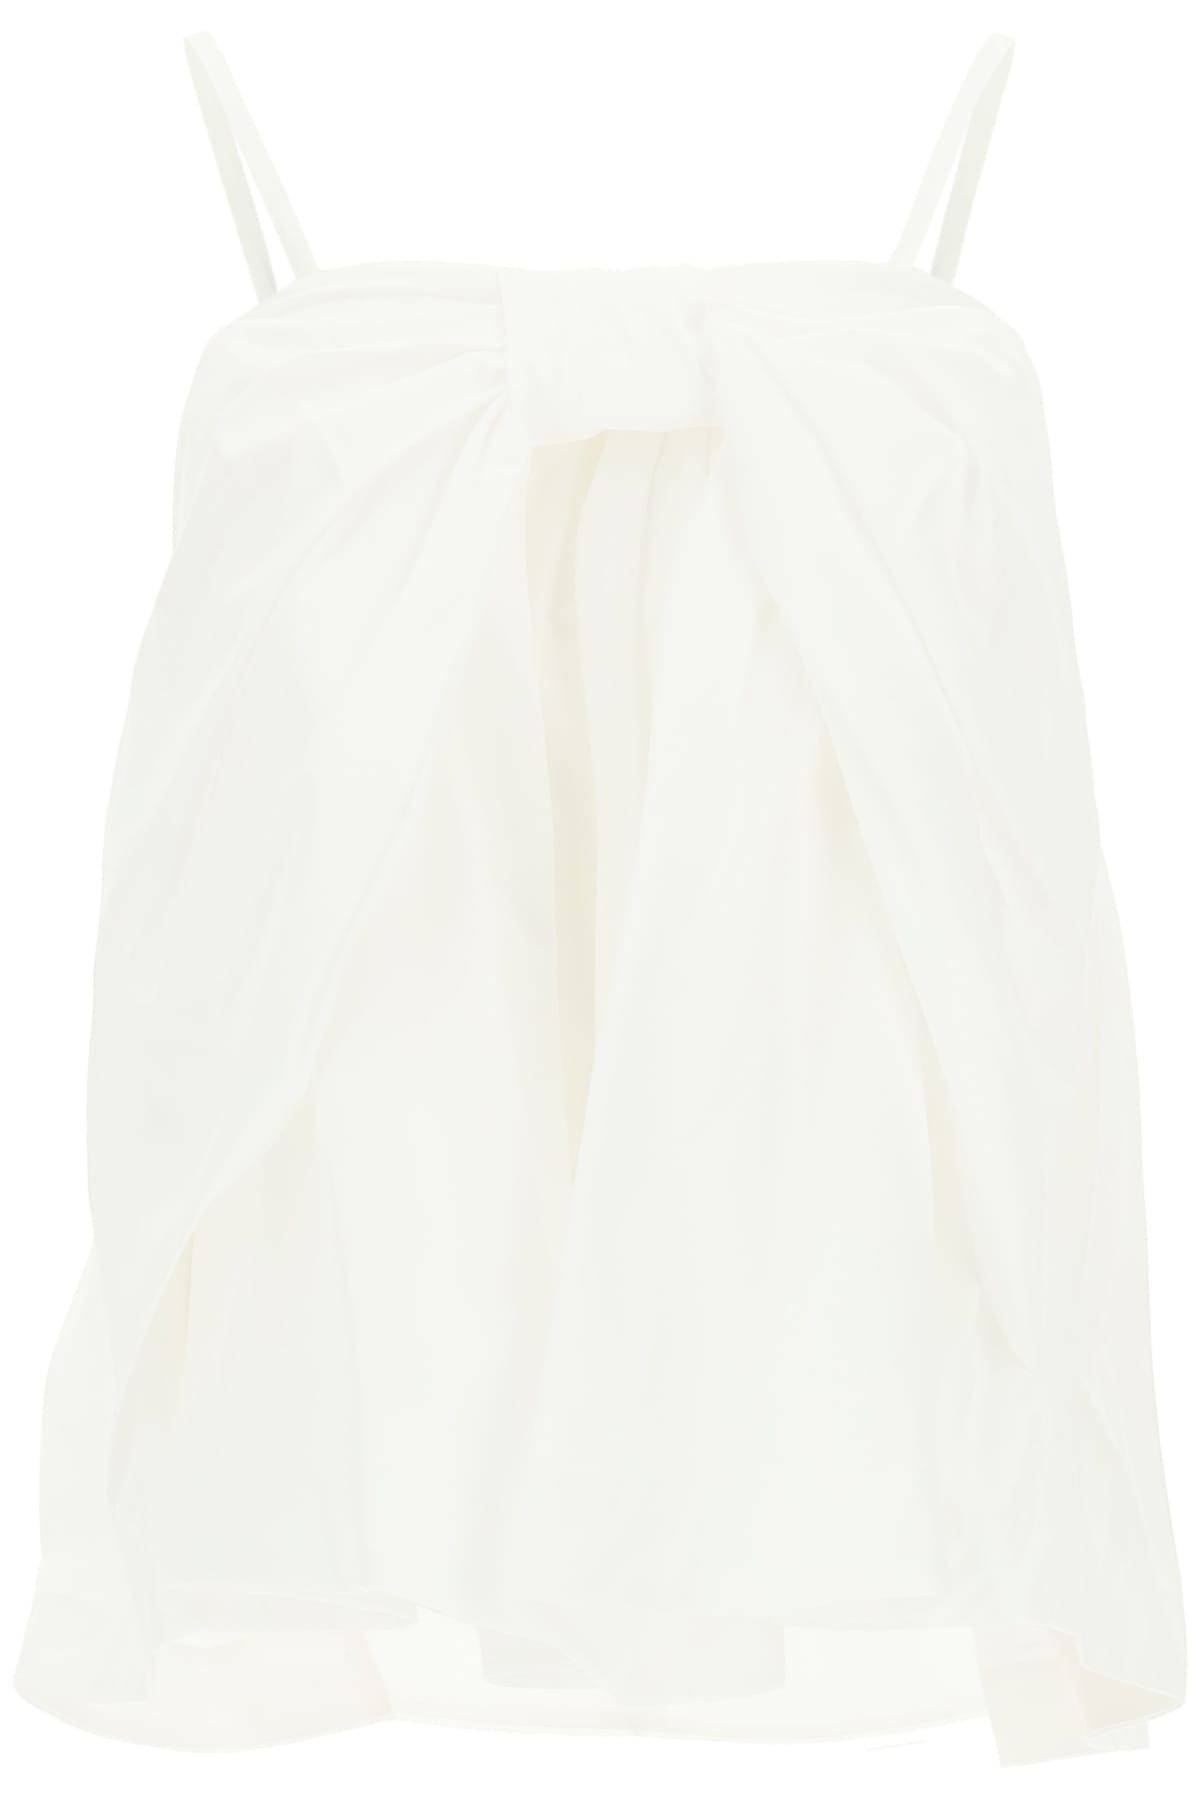 Simone Rocha BOW TOP